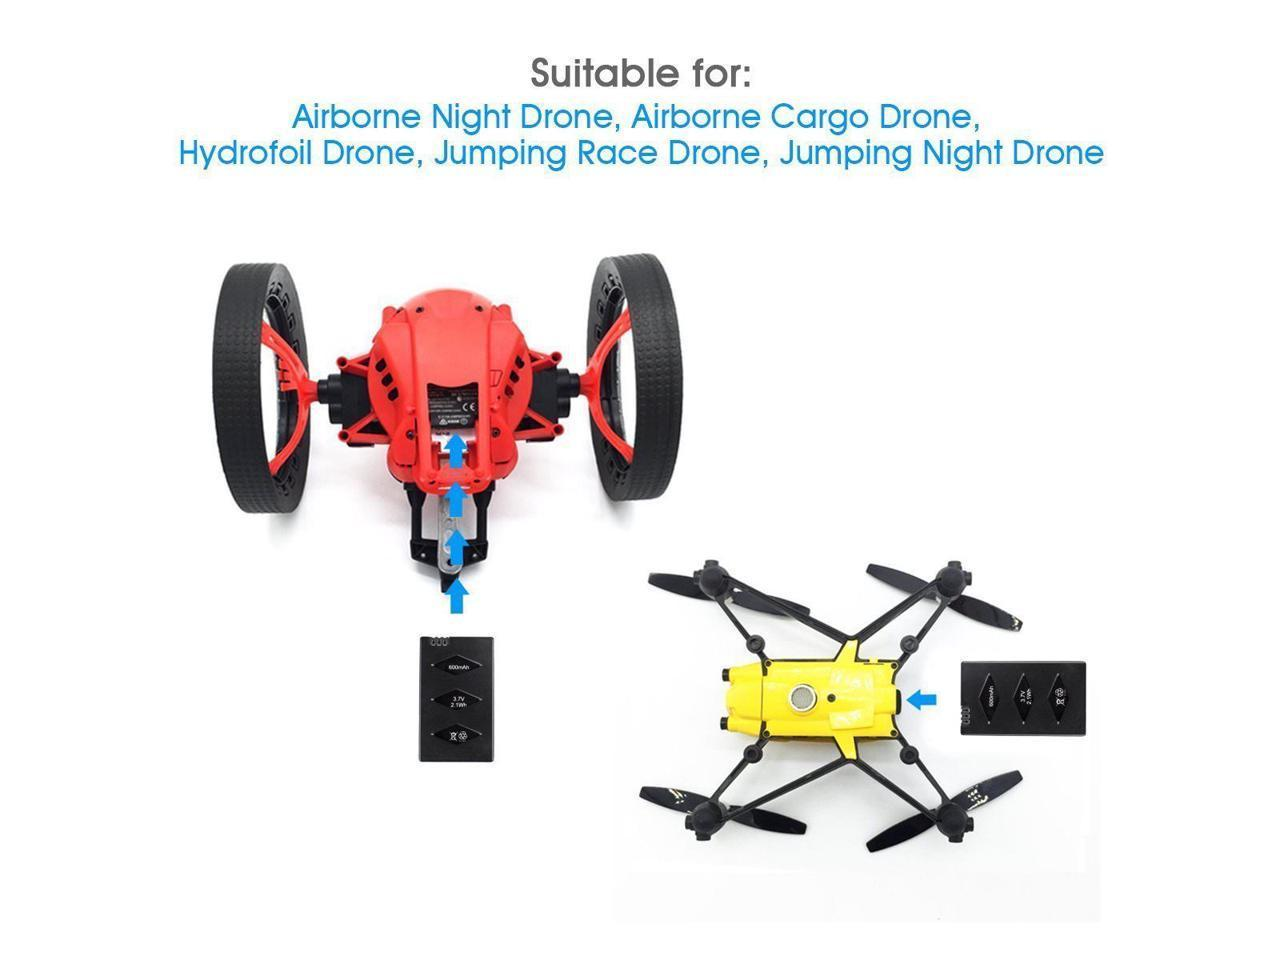 Rucan 3 Battery//Set for Parrot MiniDrone Jumping Sumo Swing Mambo Rolling Spider